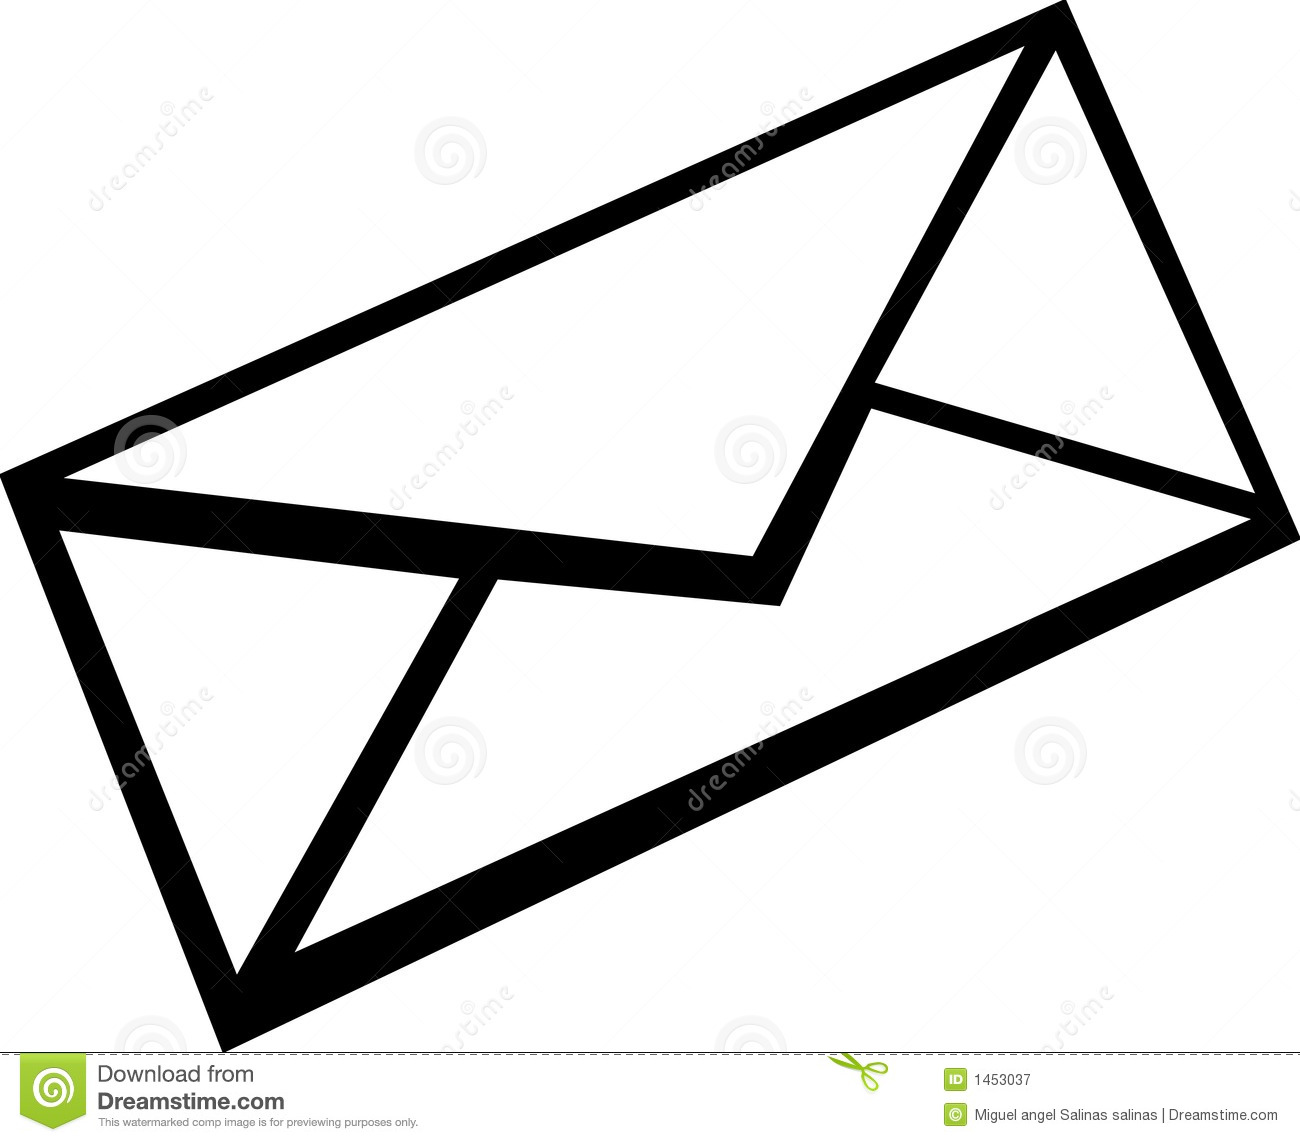 Free Cliparts Mail Envelope, Download Free Clip Art, Free ... vector royalty free download